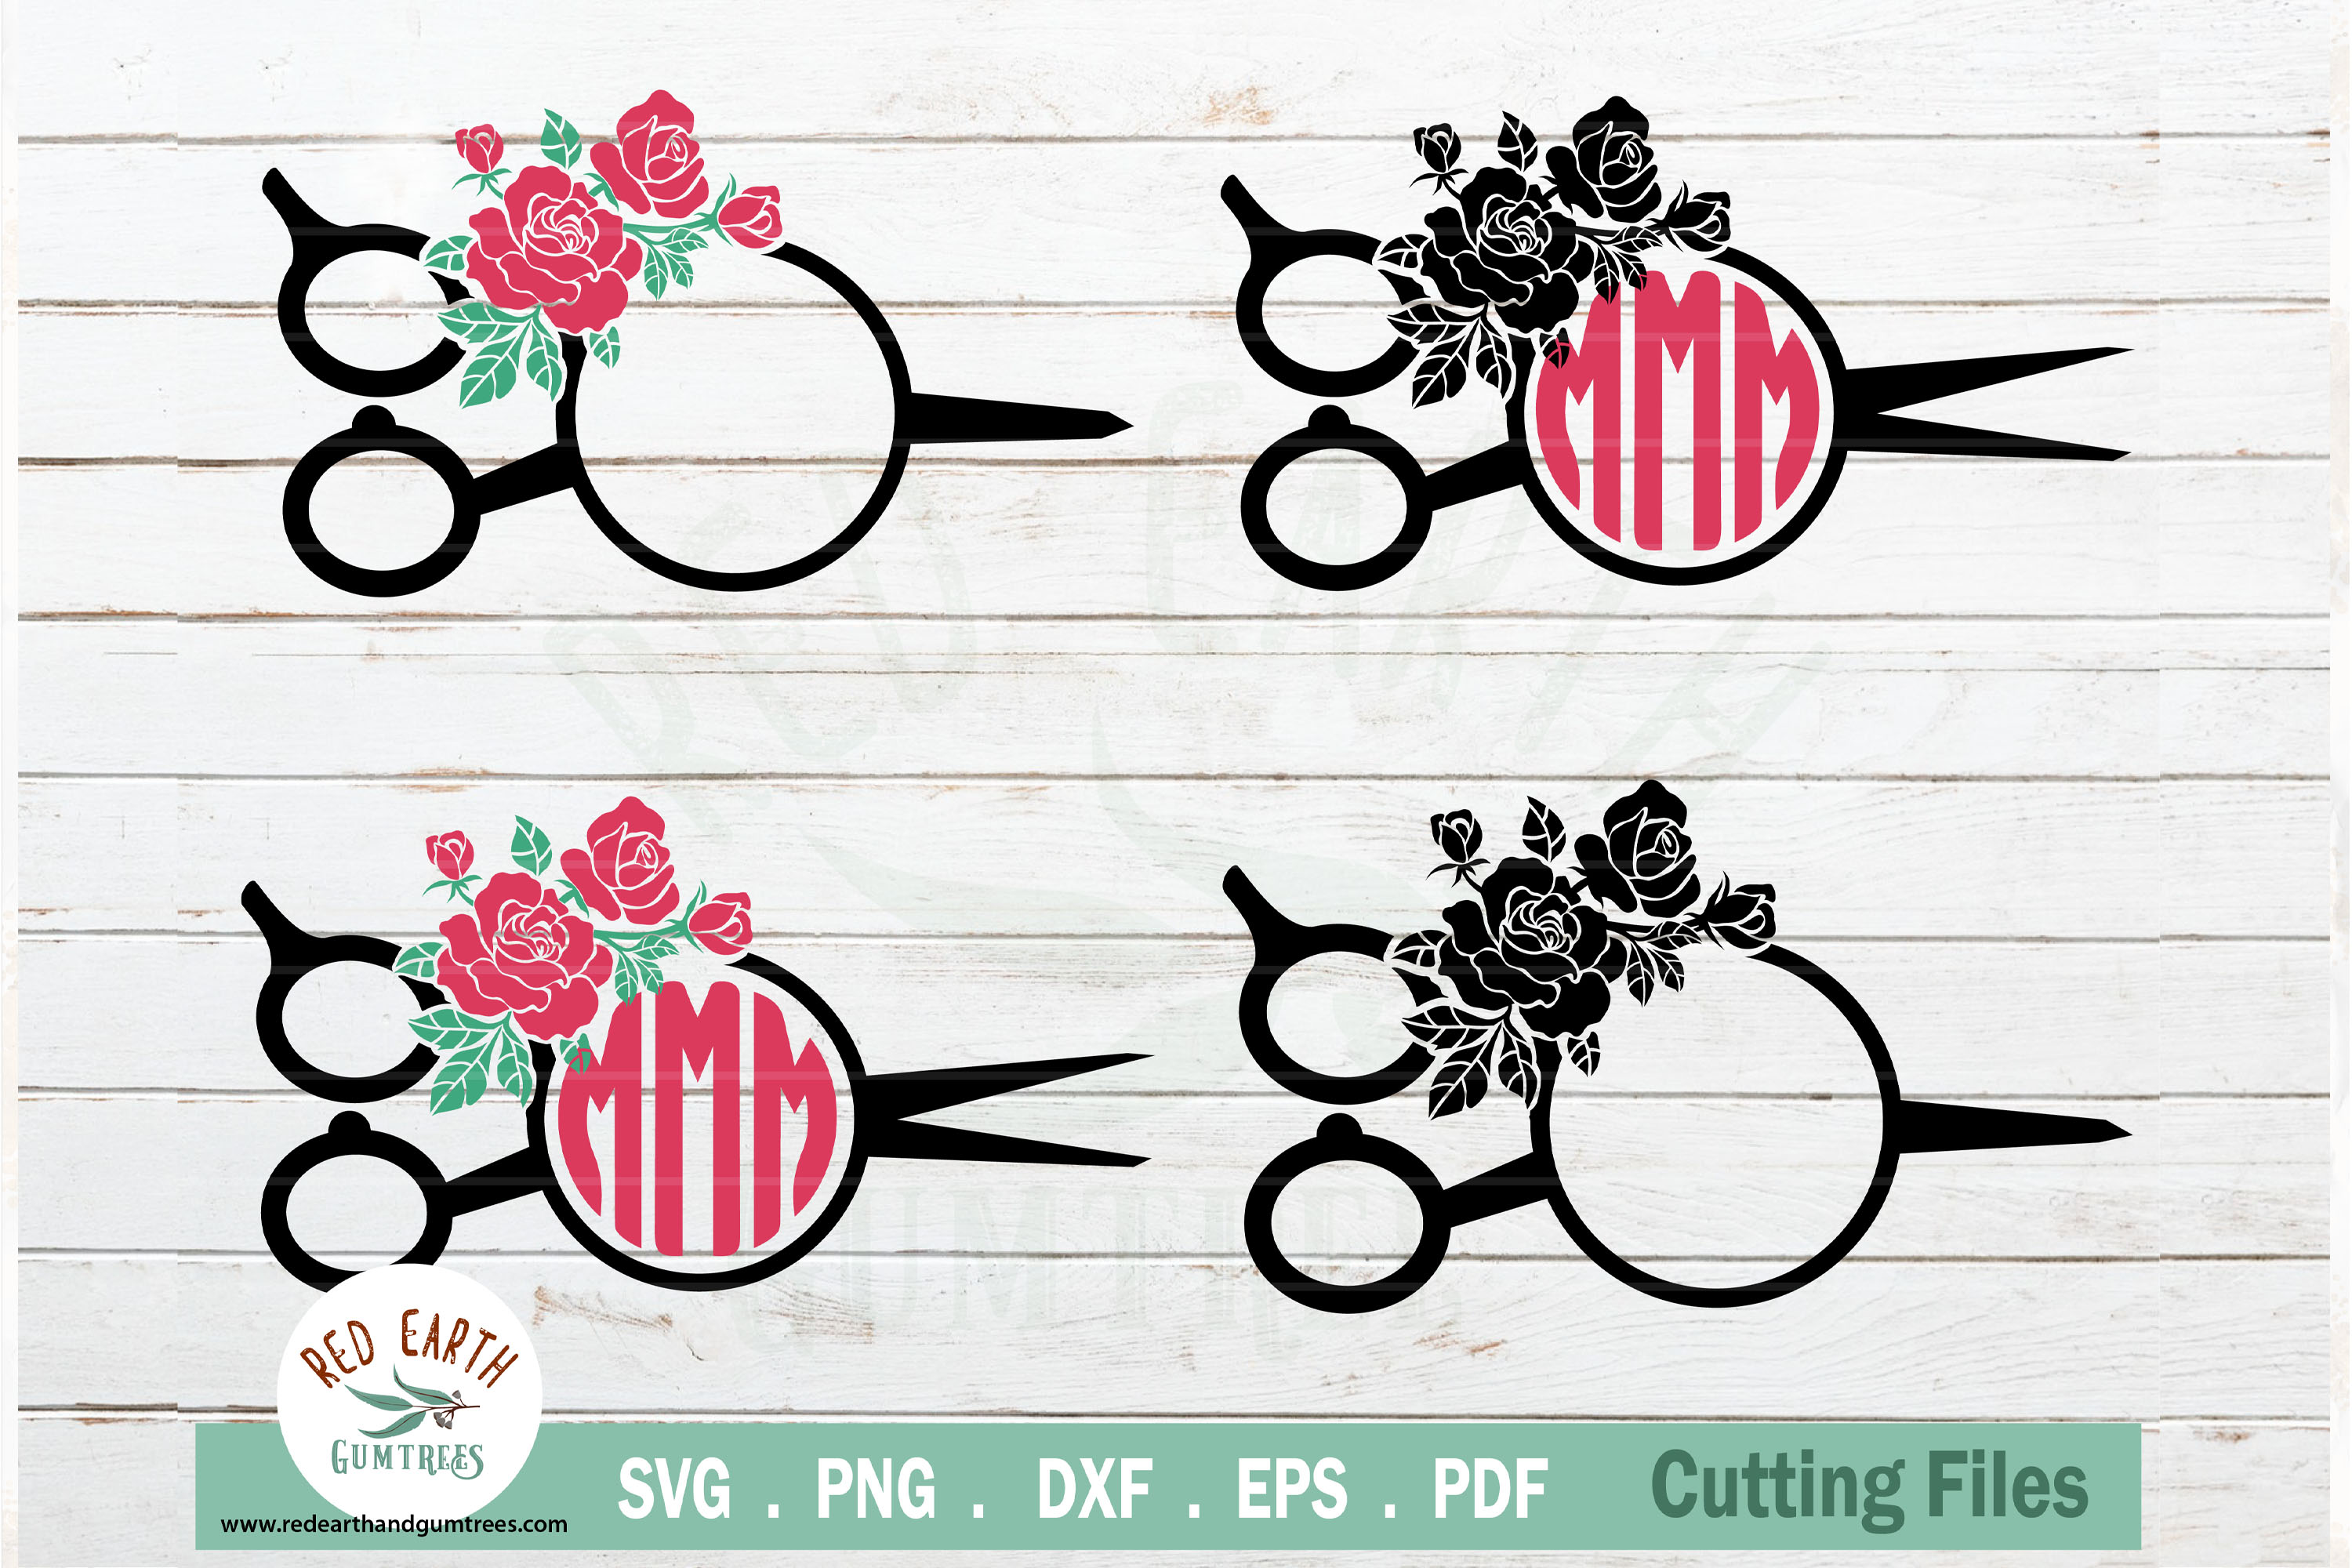 Download Free Svg Cuts For Cricut Free Svg Cut Files Create Your Diy Projects Using Your Cricut Explore Silhouette And More The Free Cut Files Include Svg Dxf Eps And Png Files SVG Cut Files